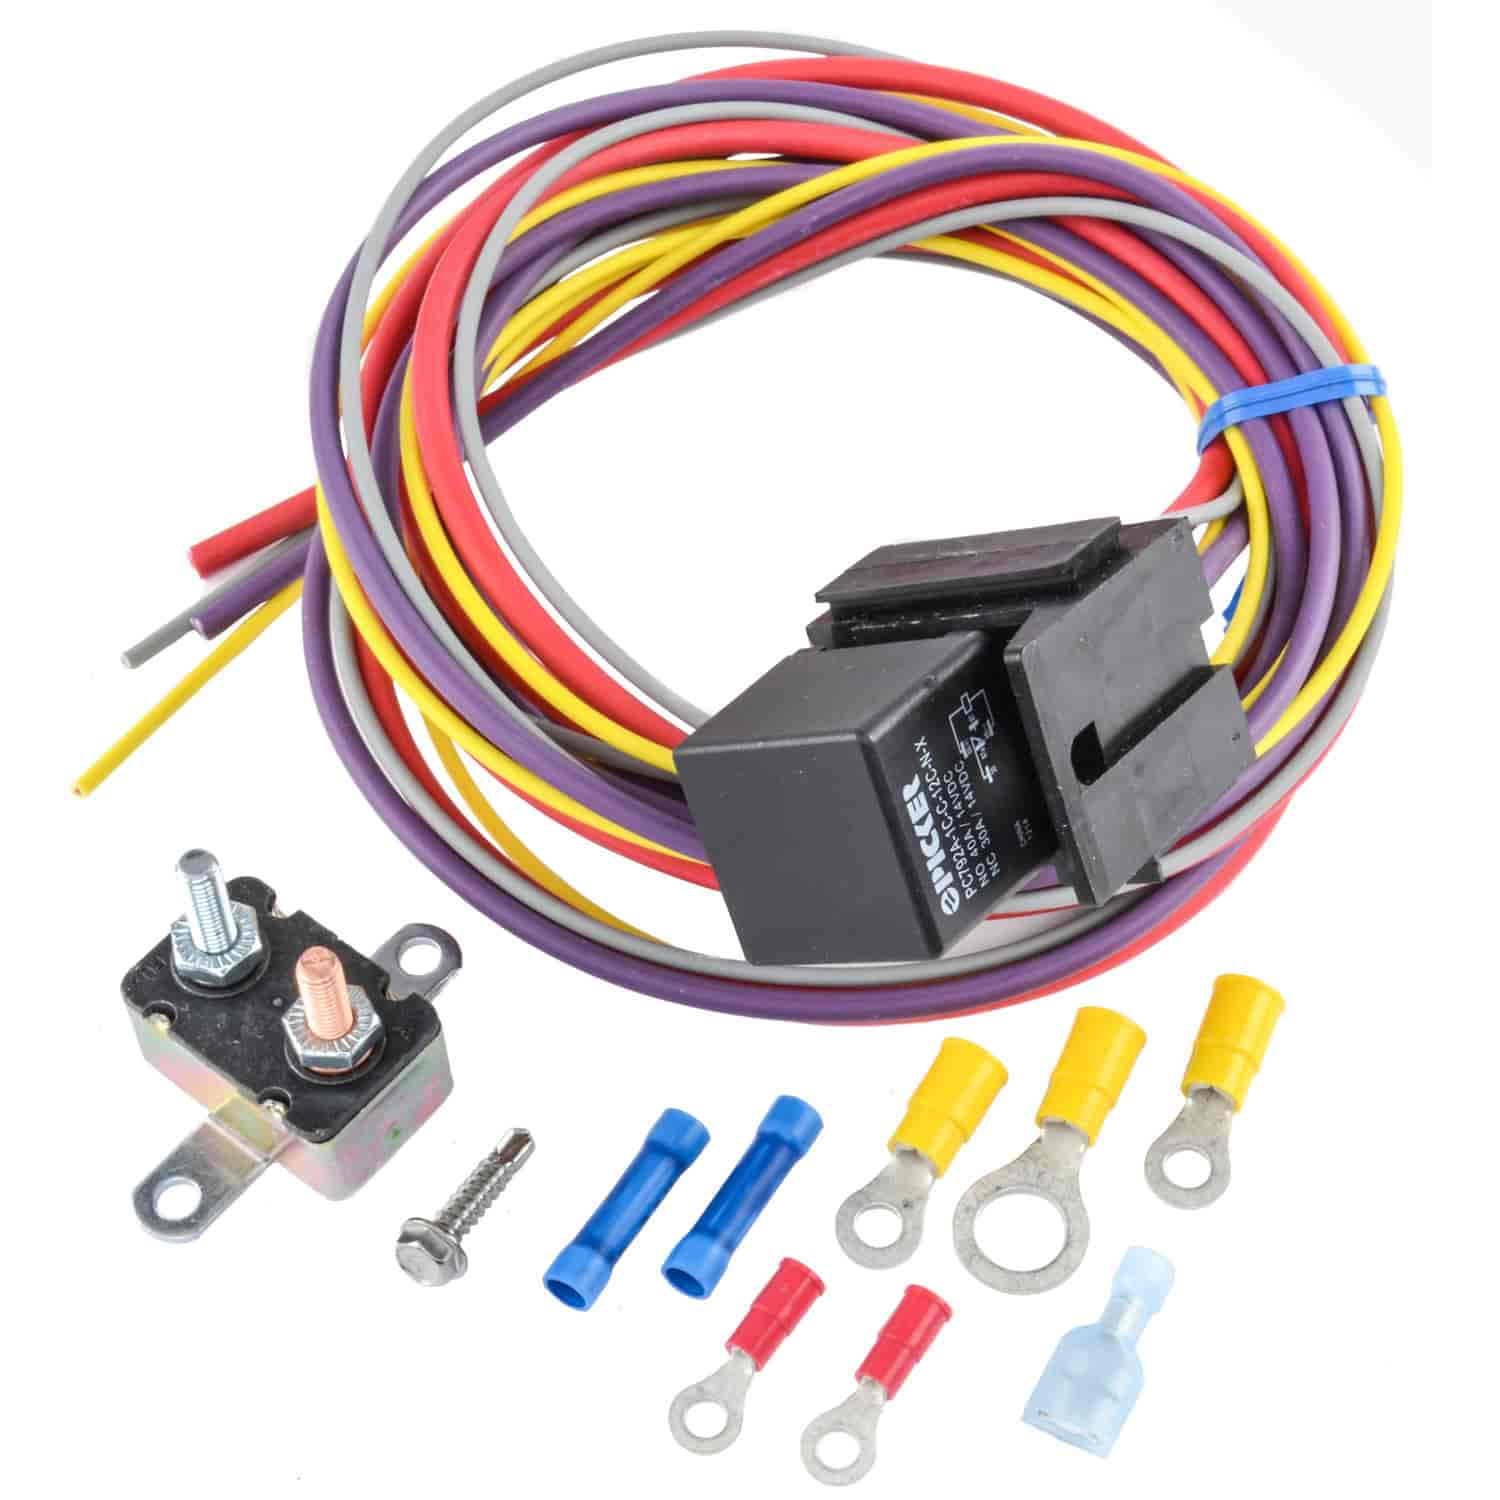 555 10559 jegs performance products 10559 manual controlled single fan jegs universal wiring harness at n-0.co